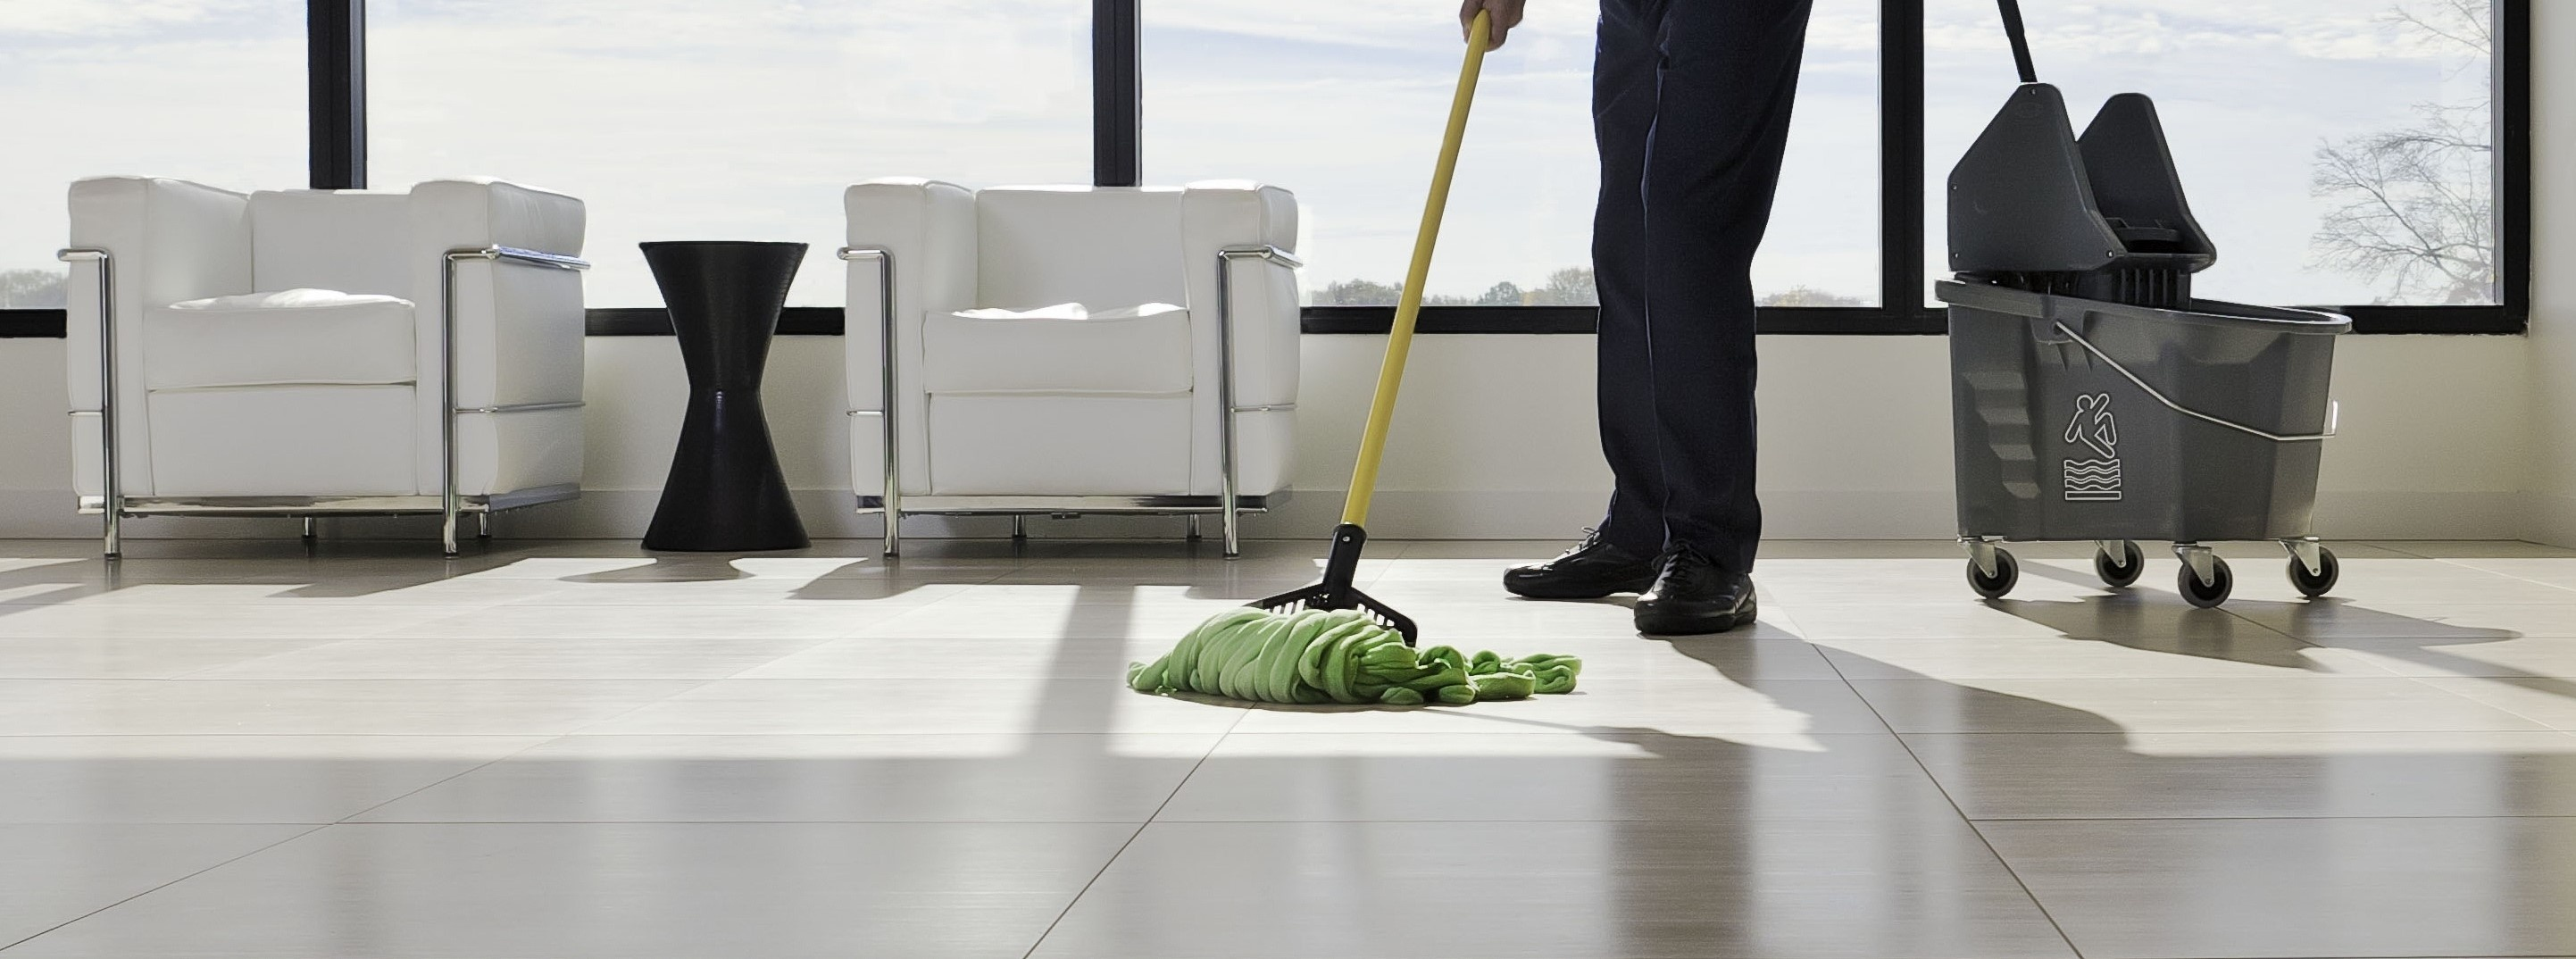 Profitable Commercial Cleaning Franchise